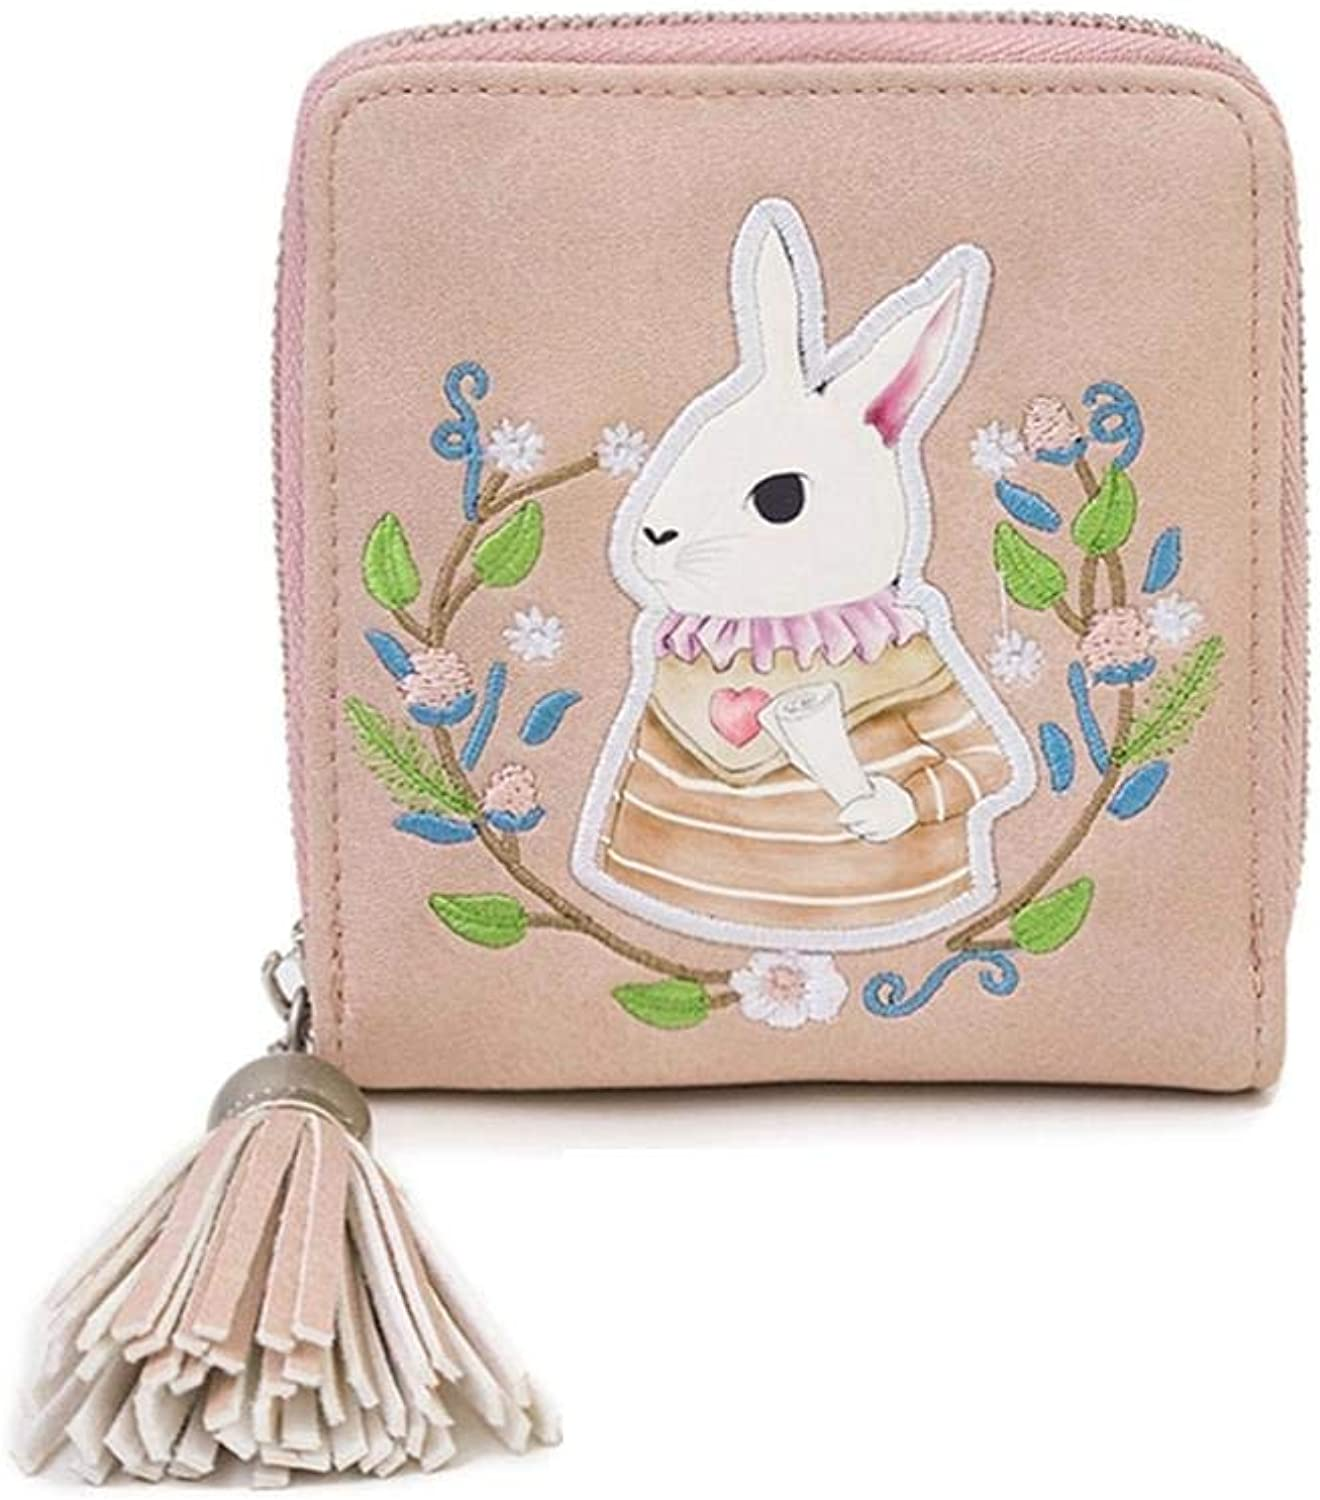 WeoHau Embroidered Zipper Tassel Wallet Ladies Pu Short Student Cute Simple Small Fresh,Pink